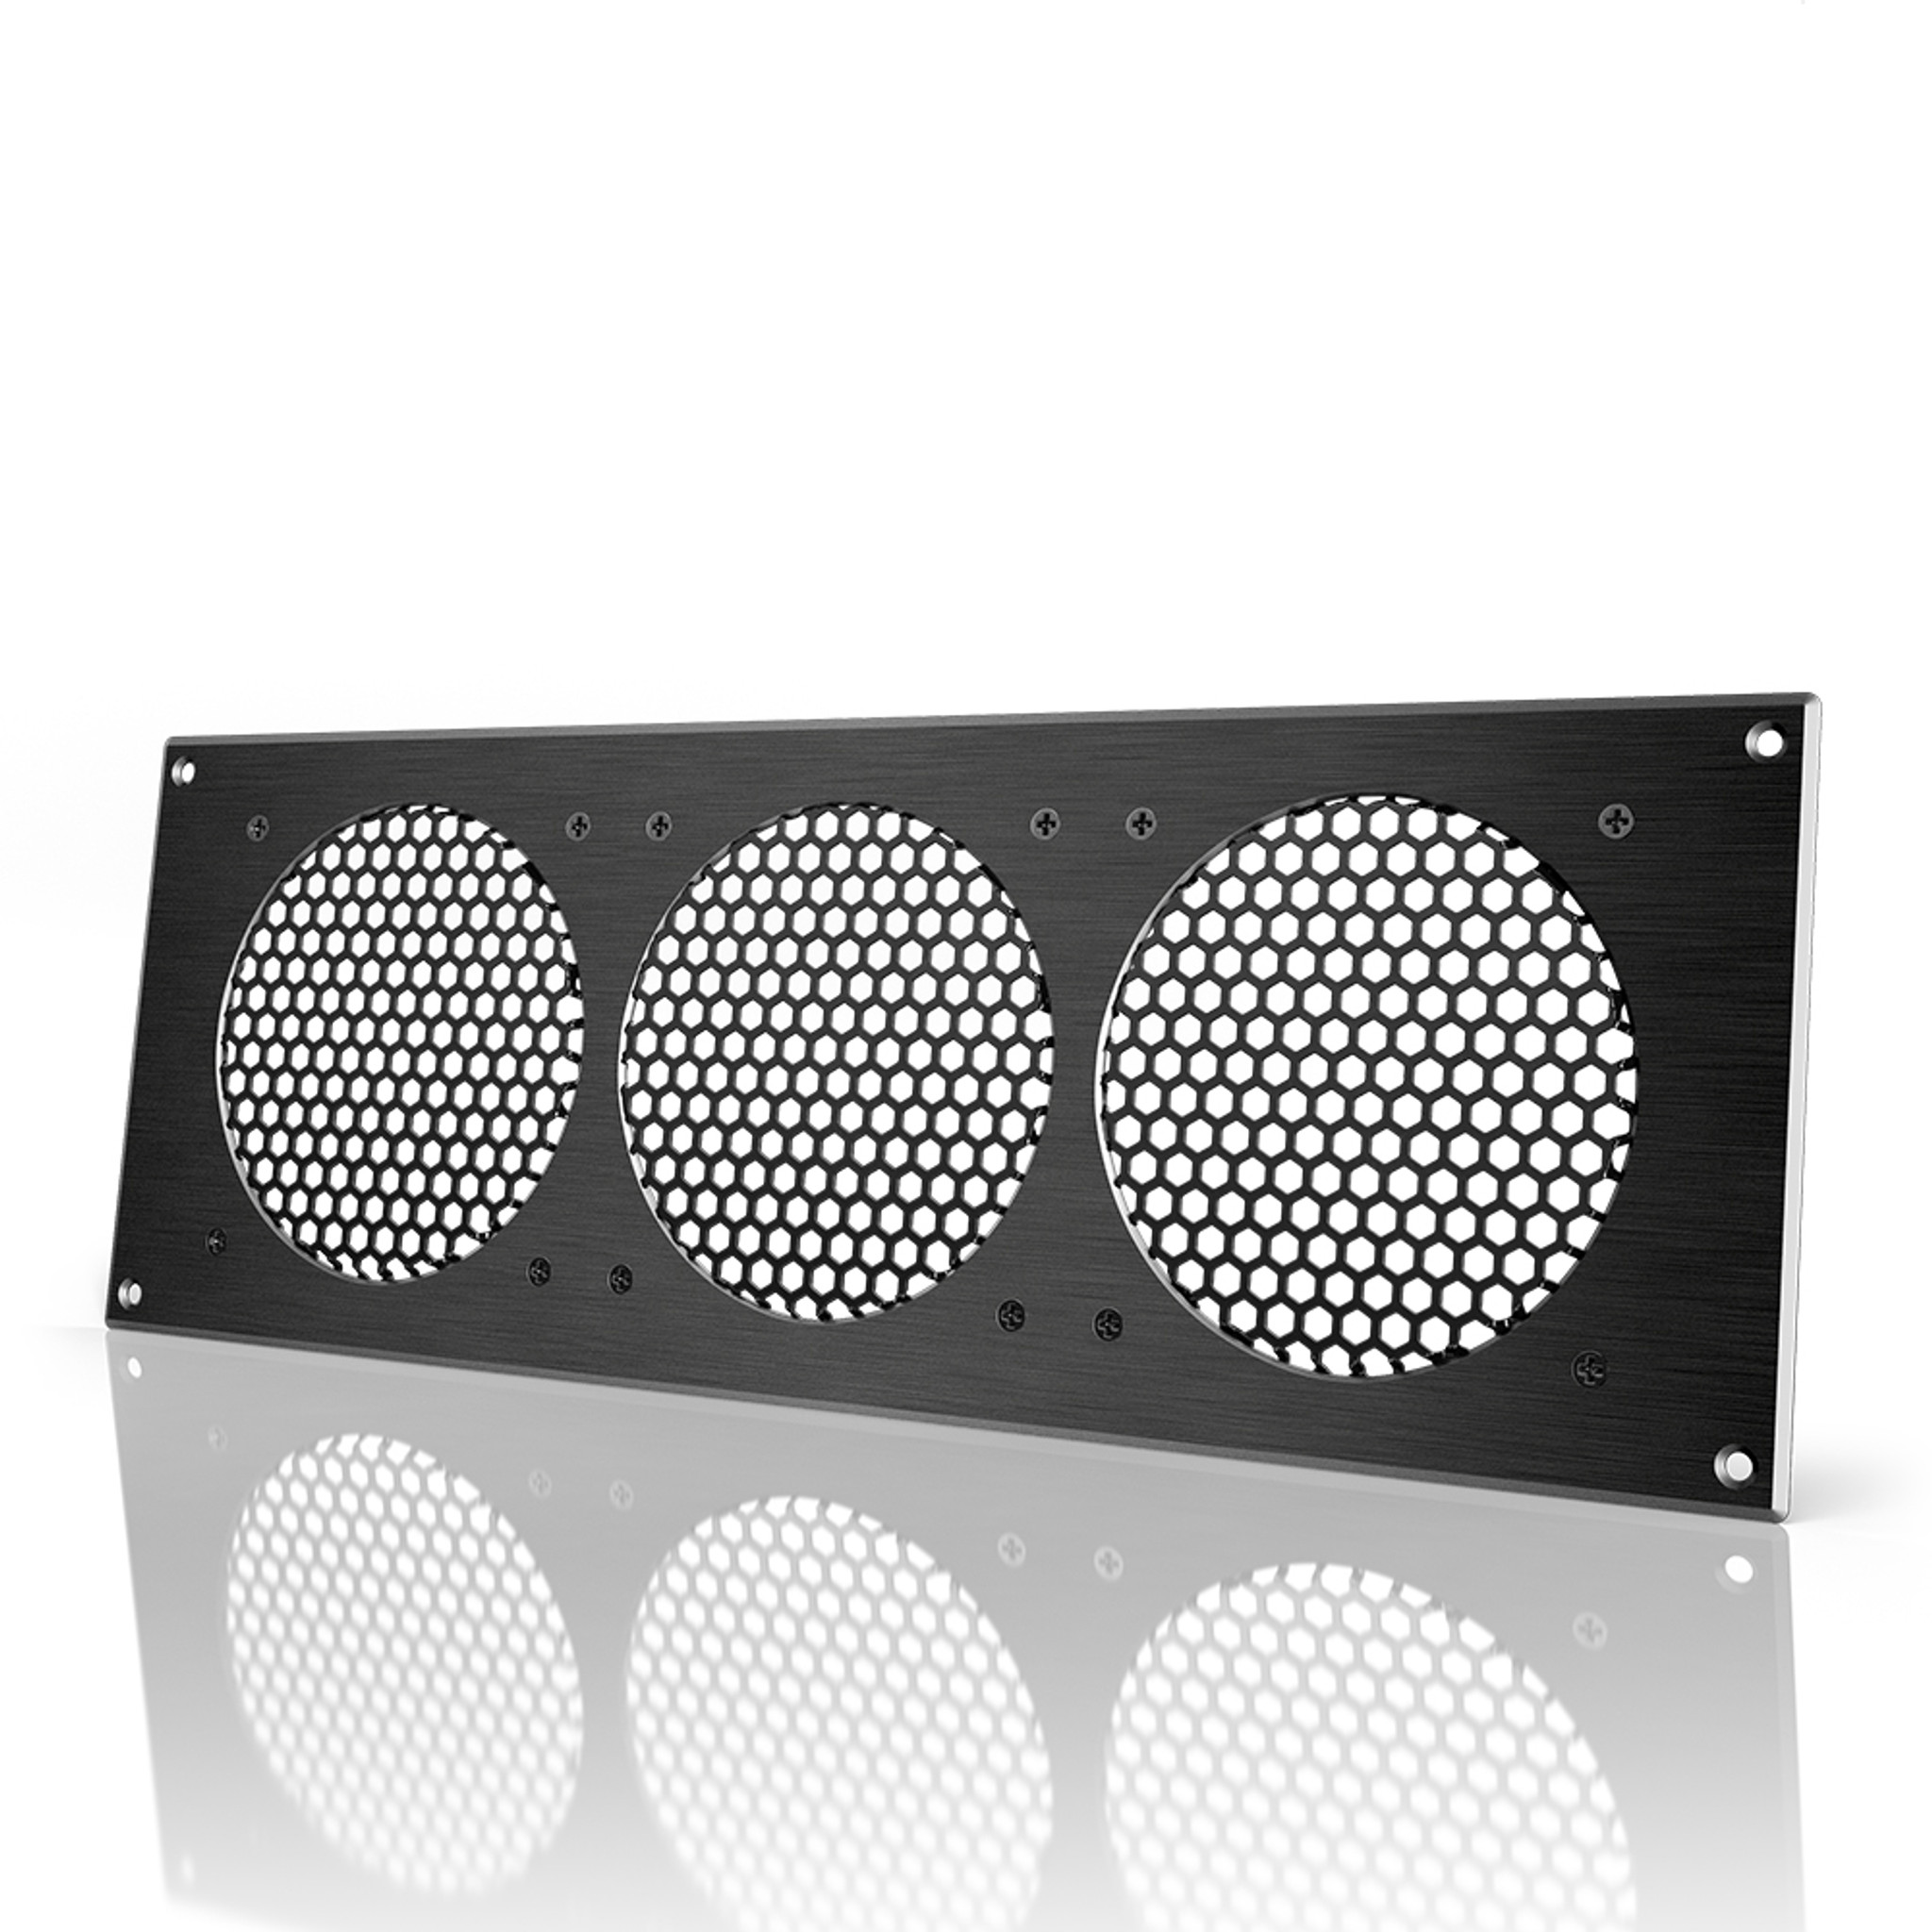 Ac Infinity Cabinet Ventilation Grille Black 18 Inch